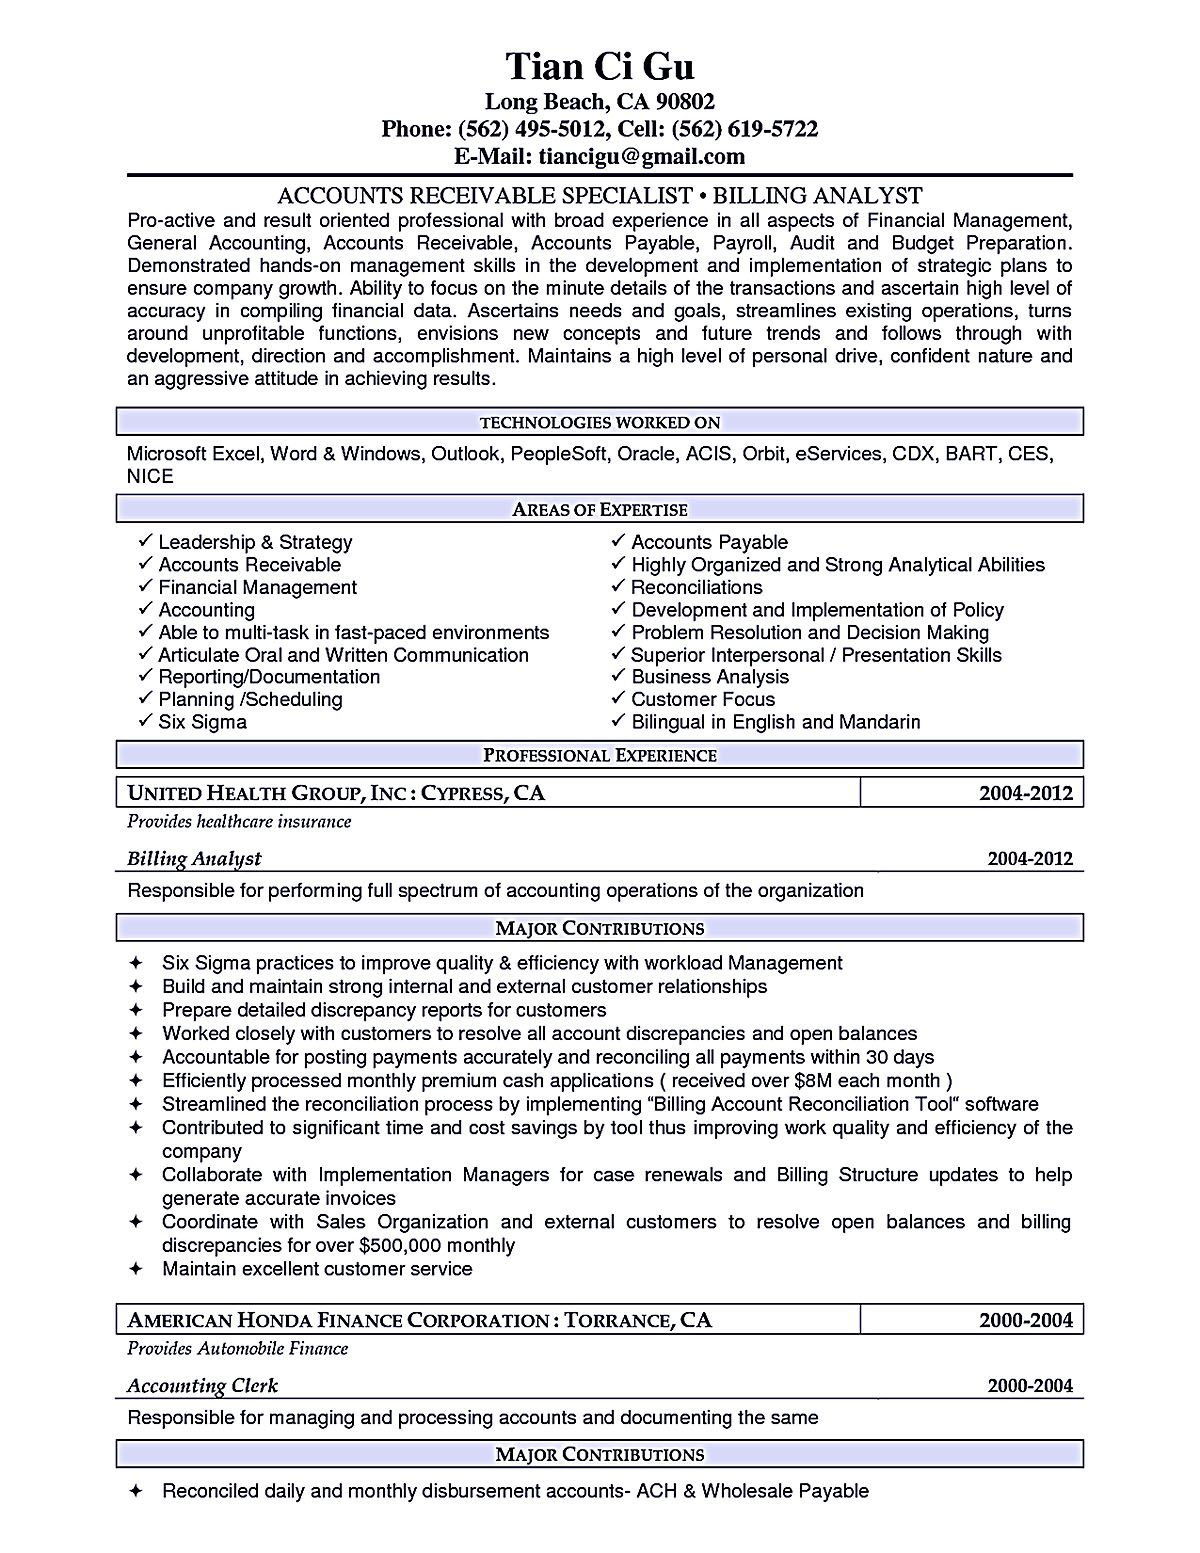 Accounts Receivable Resume Account Receivable Resume Shows Both Technical And Interpersonal